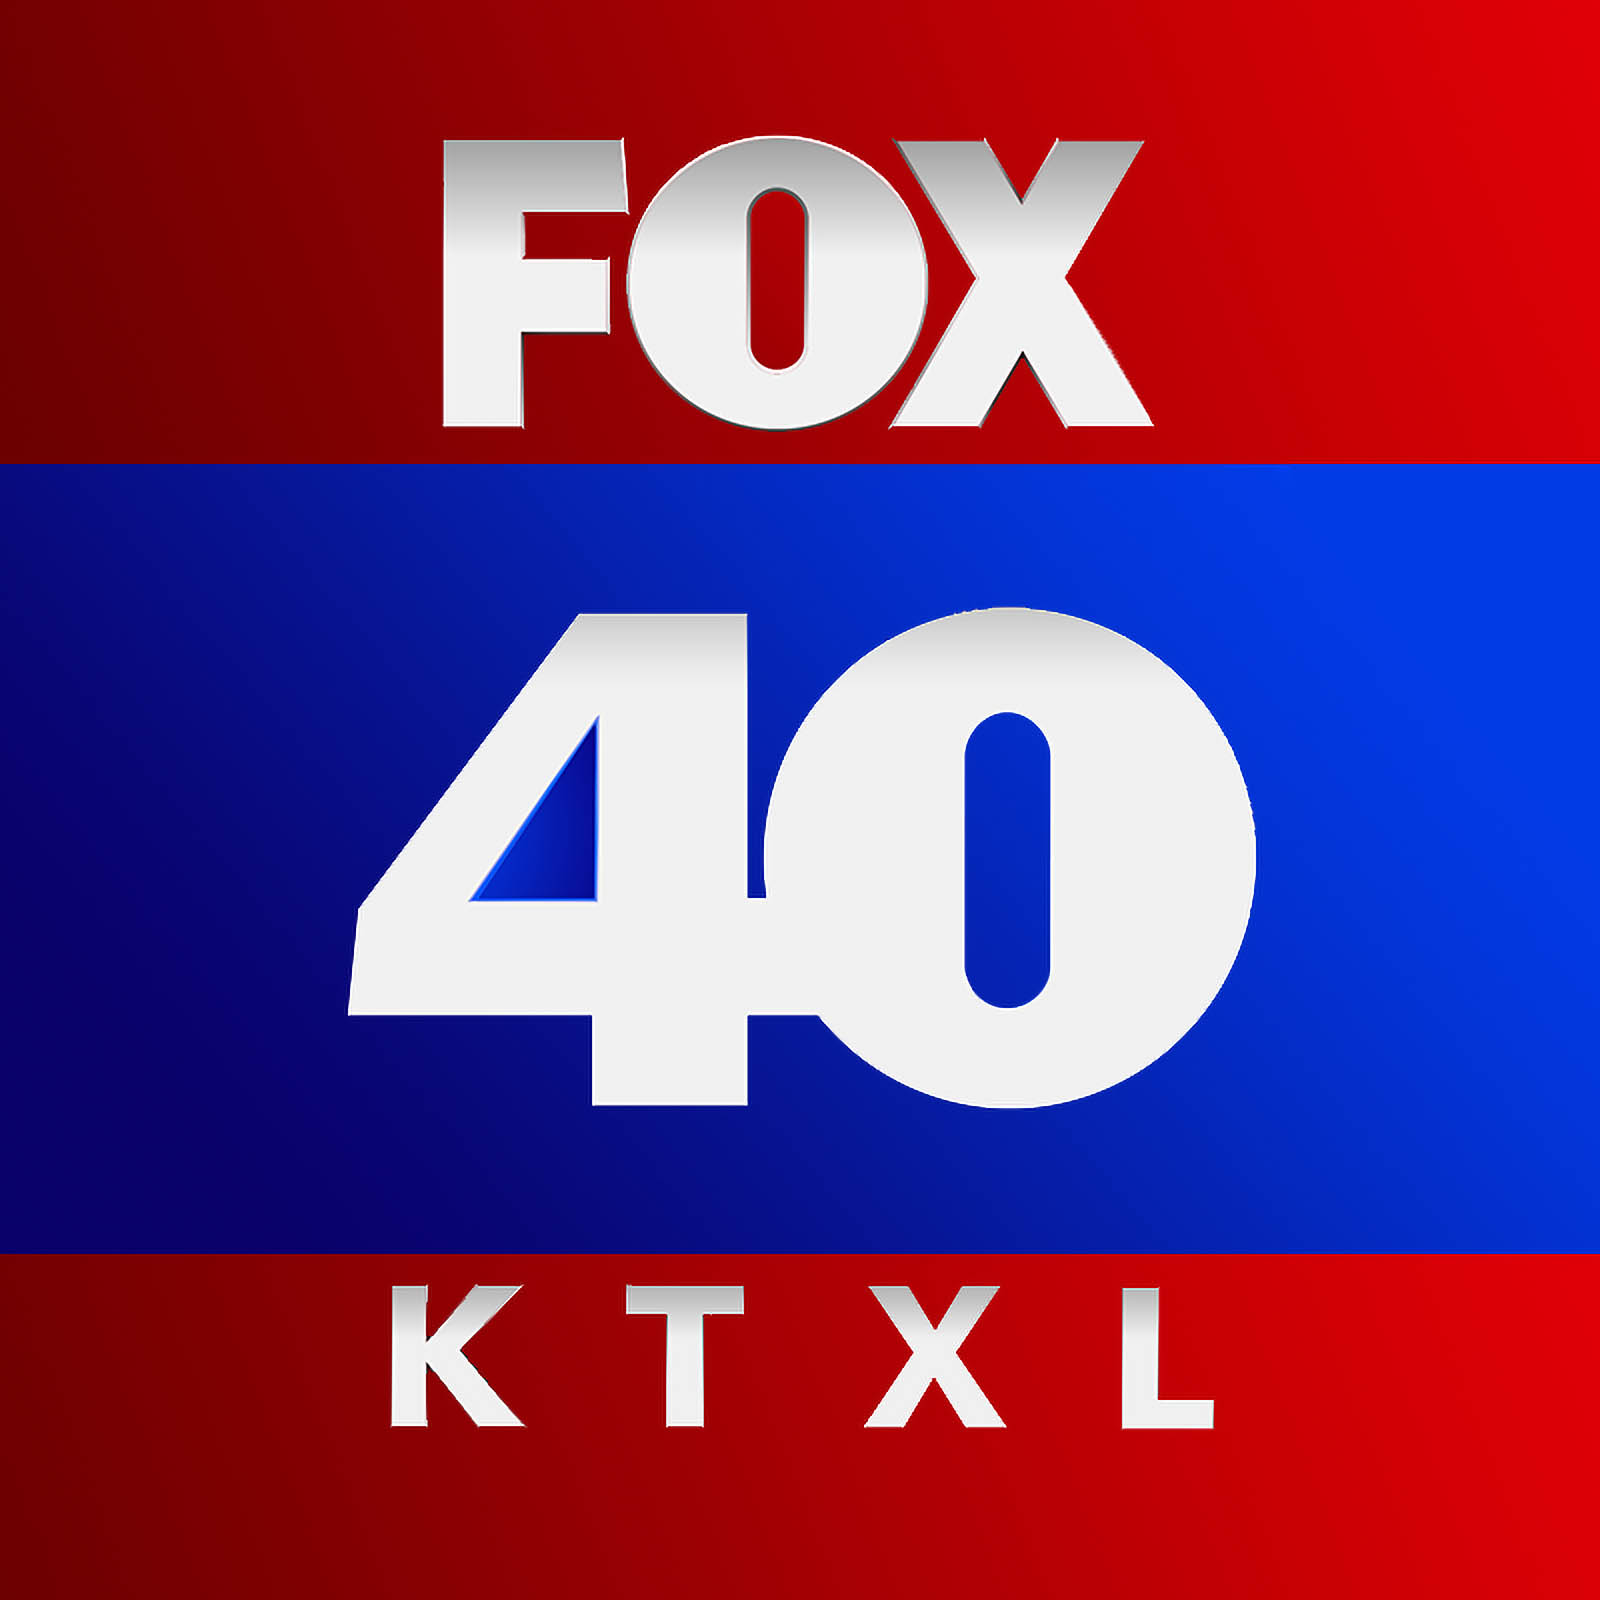 Fox 40 News Sacramento logo